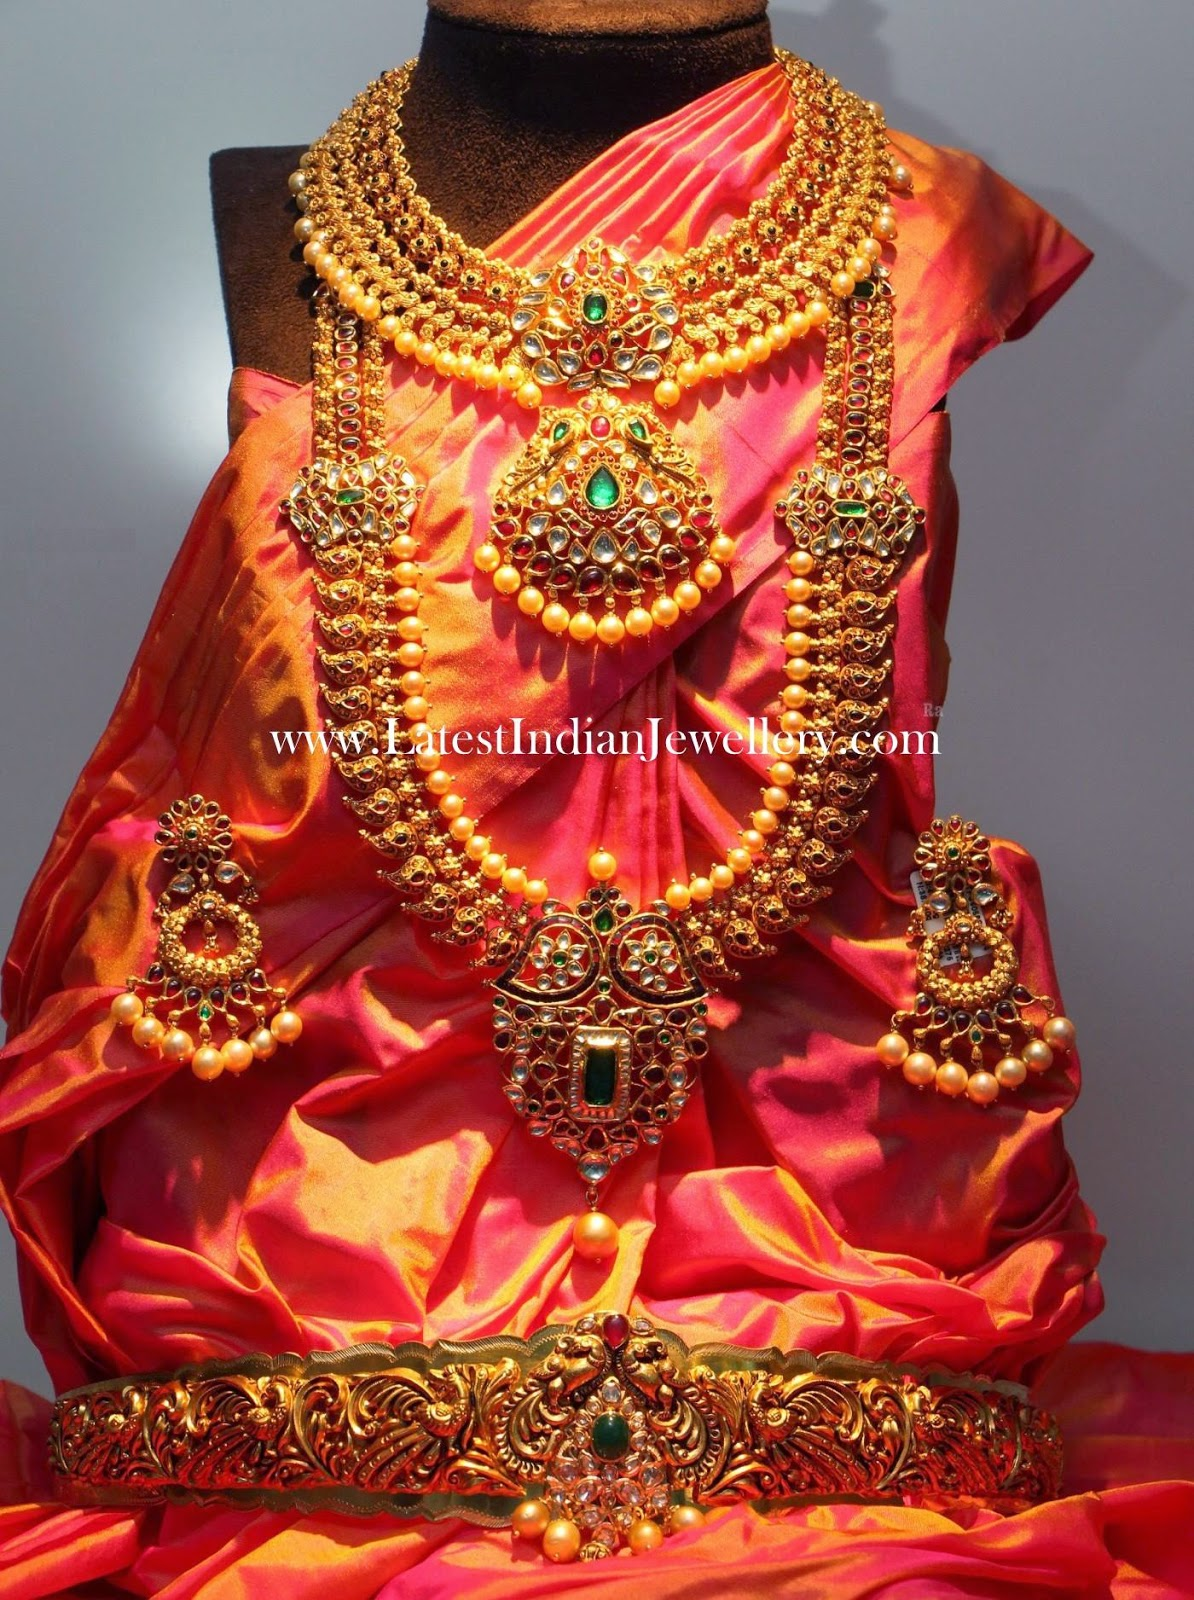 Complete Indian Wedding Jewellery Set In Gold